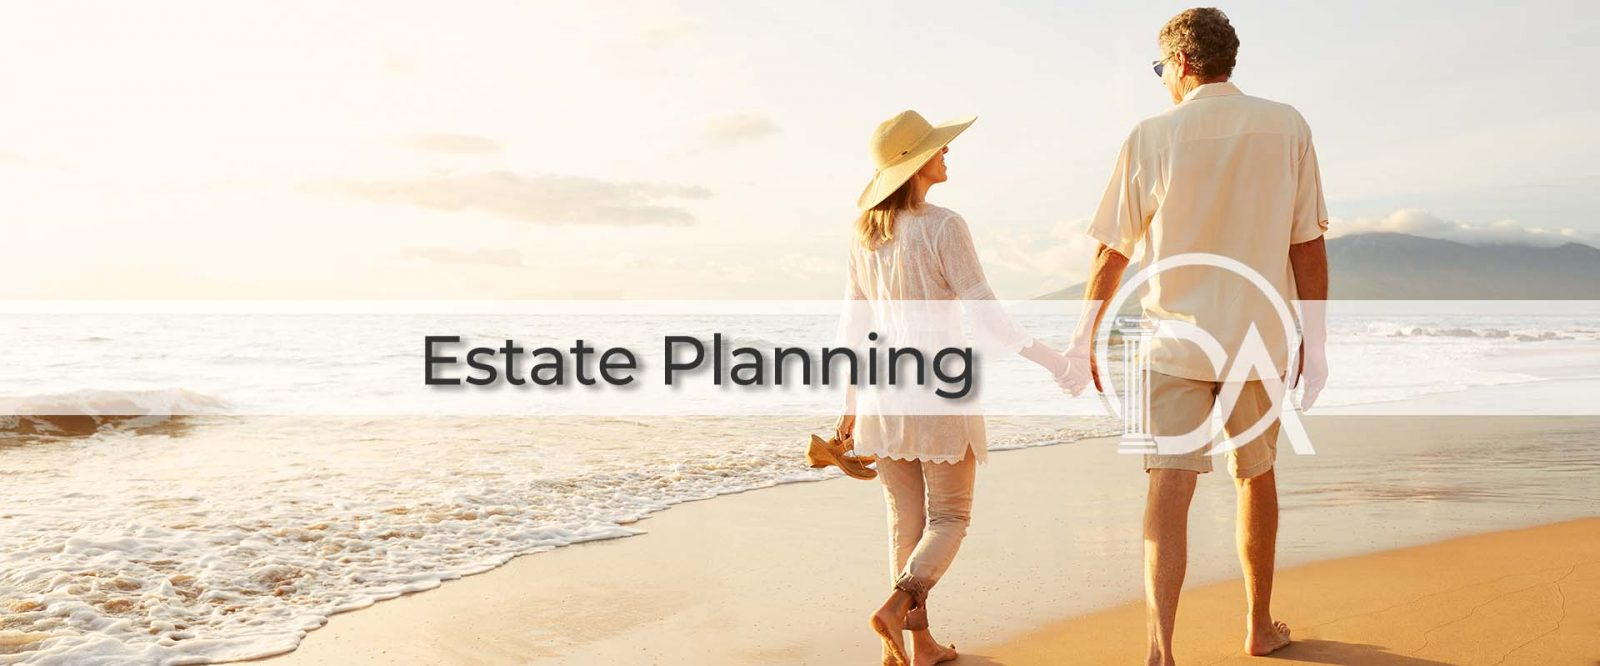 Estate Planning Attorney Dina Arvanitakis